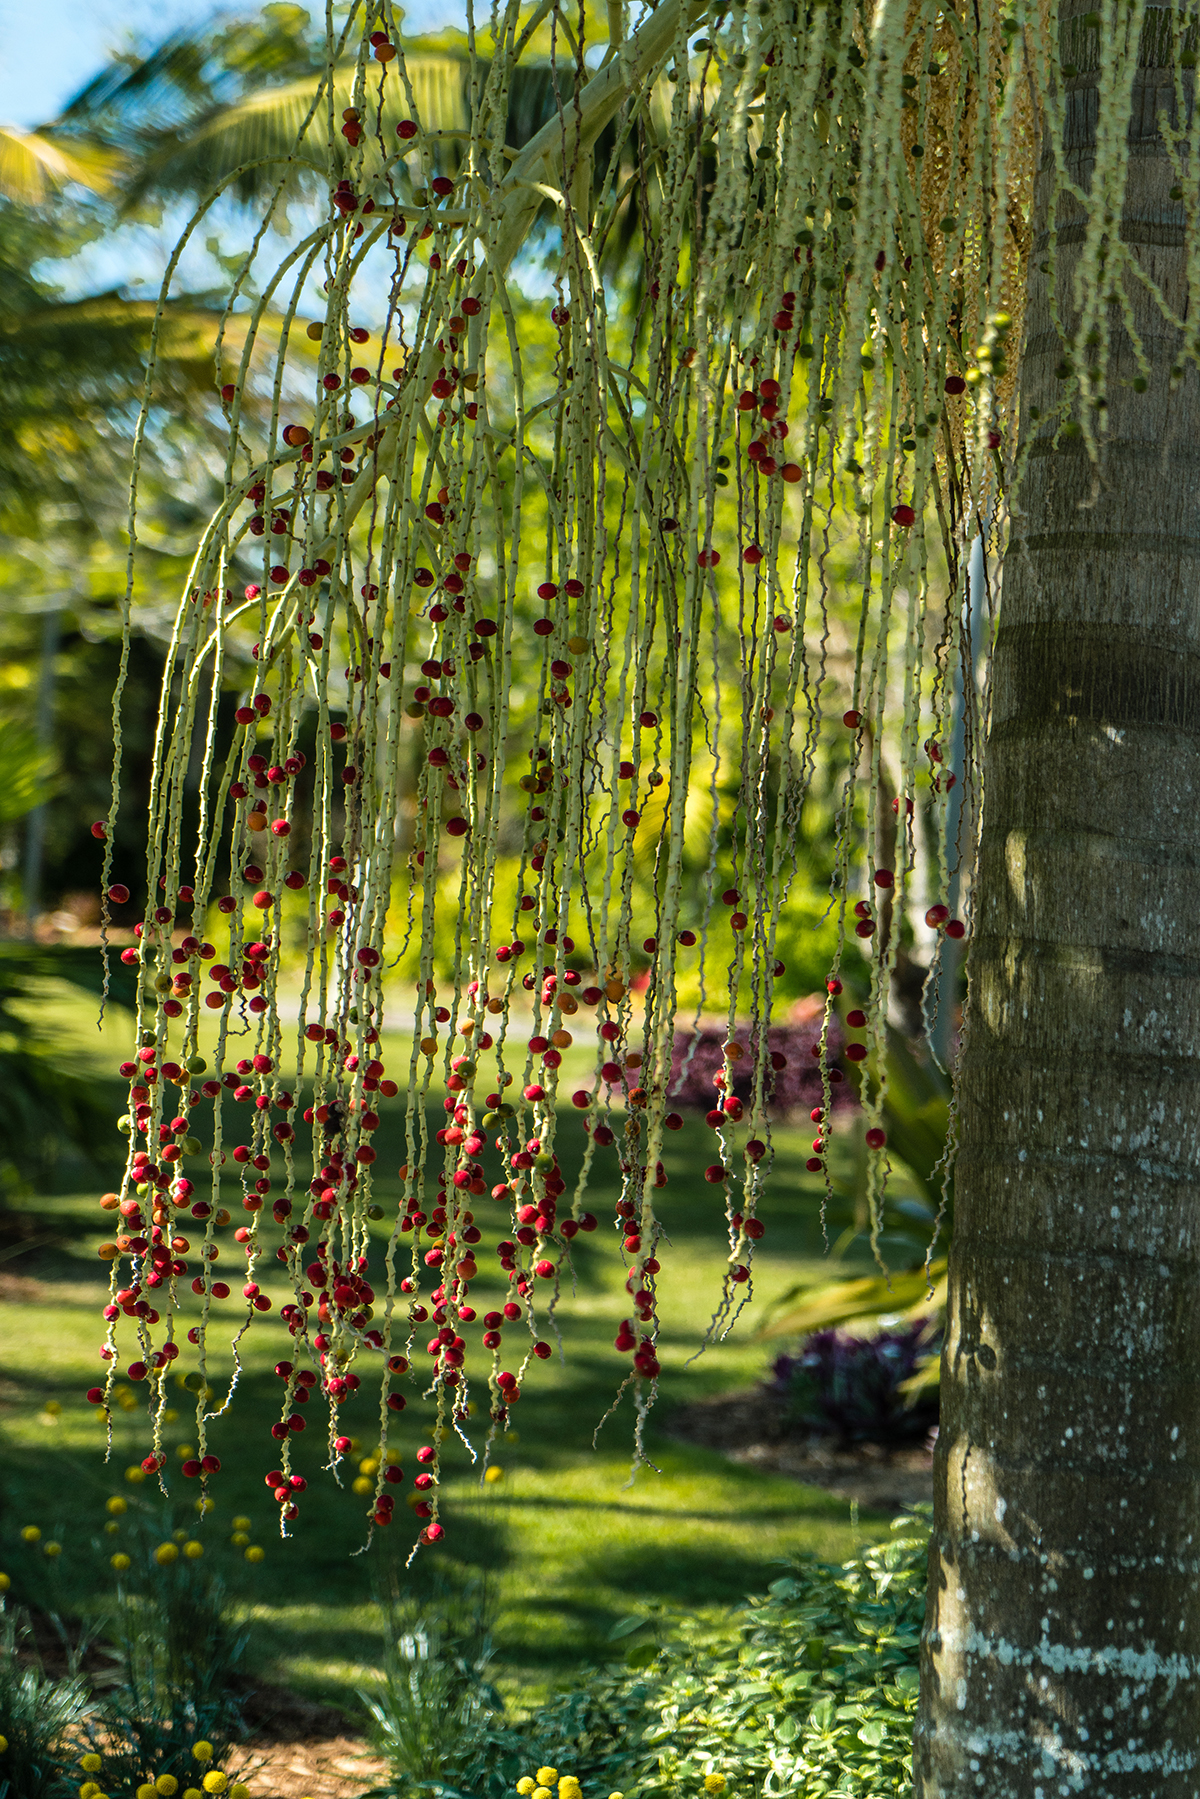 #palm, #pollination, #spring, #florida, #nature, #trees, #botanical, #garden, #red